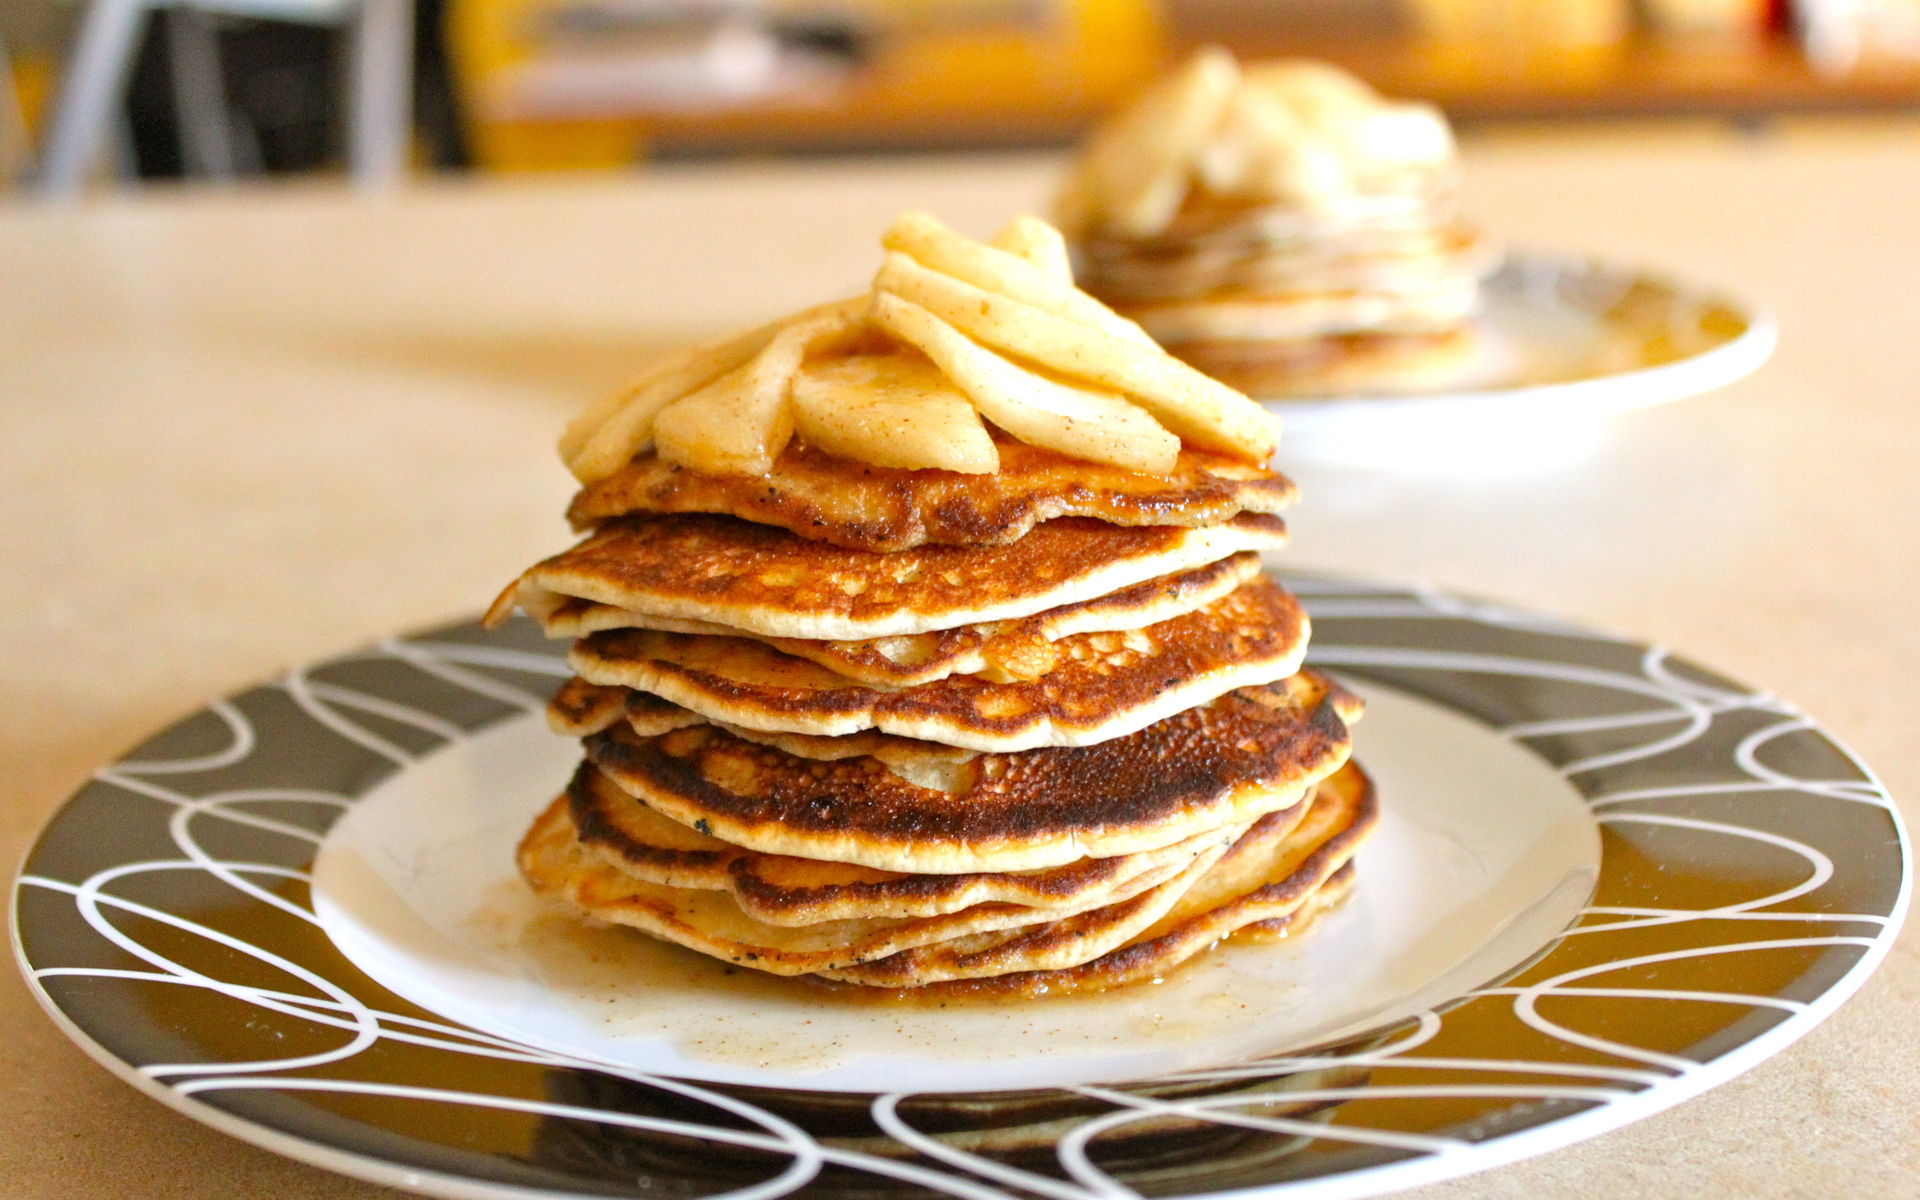 """Download the following Pancake Wallpaper HD 46702 by clicking the orange button positioned underneath the """"Download Wallpaper"""" section."""